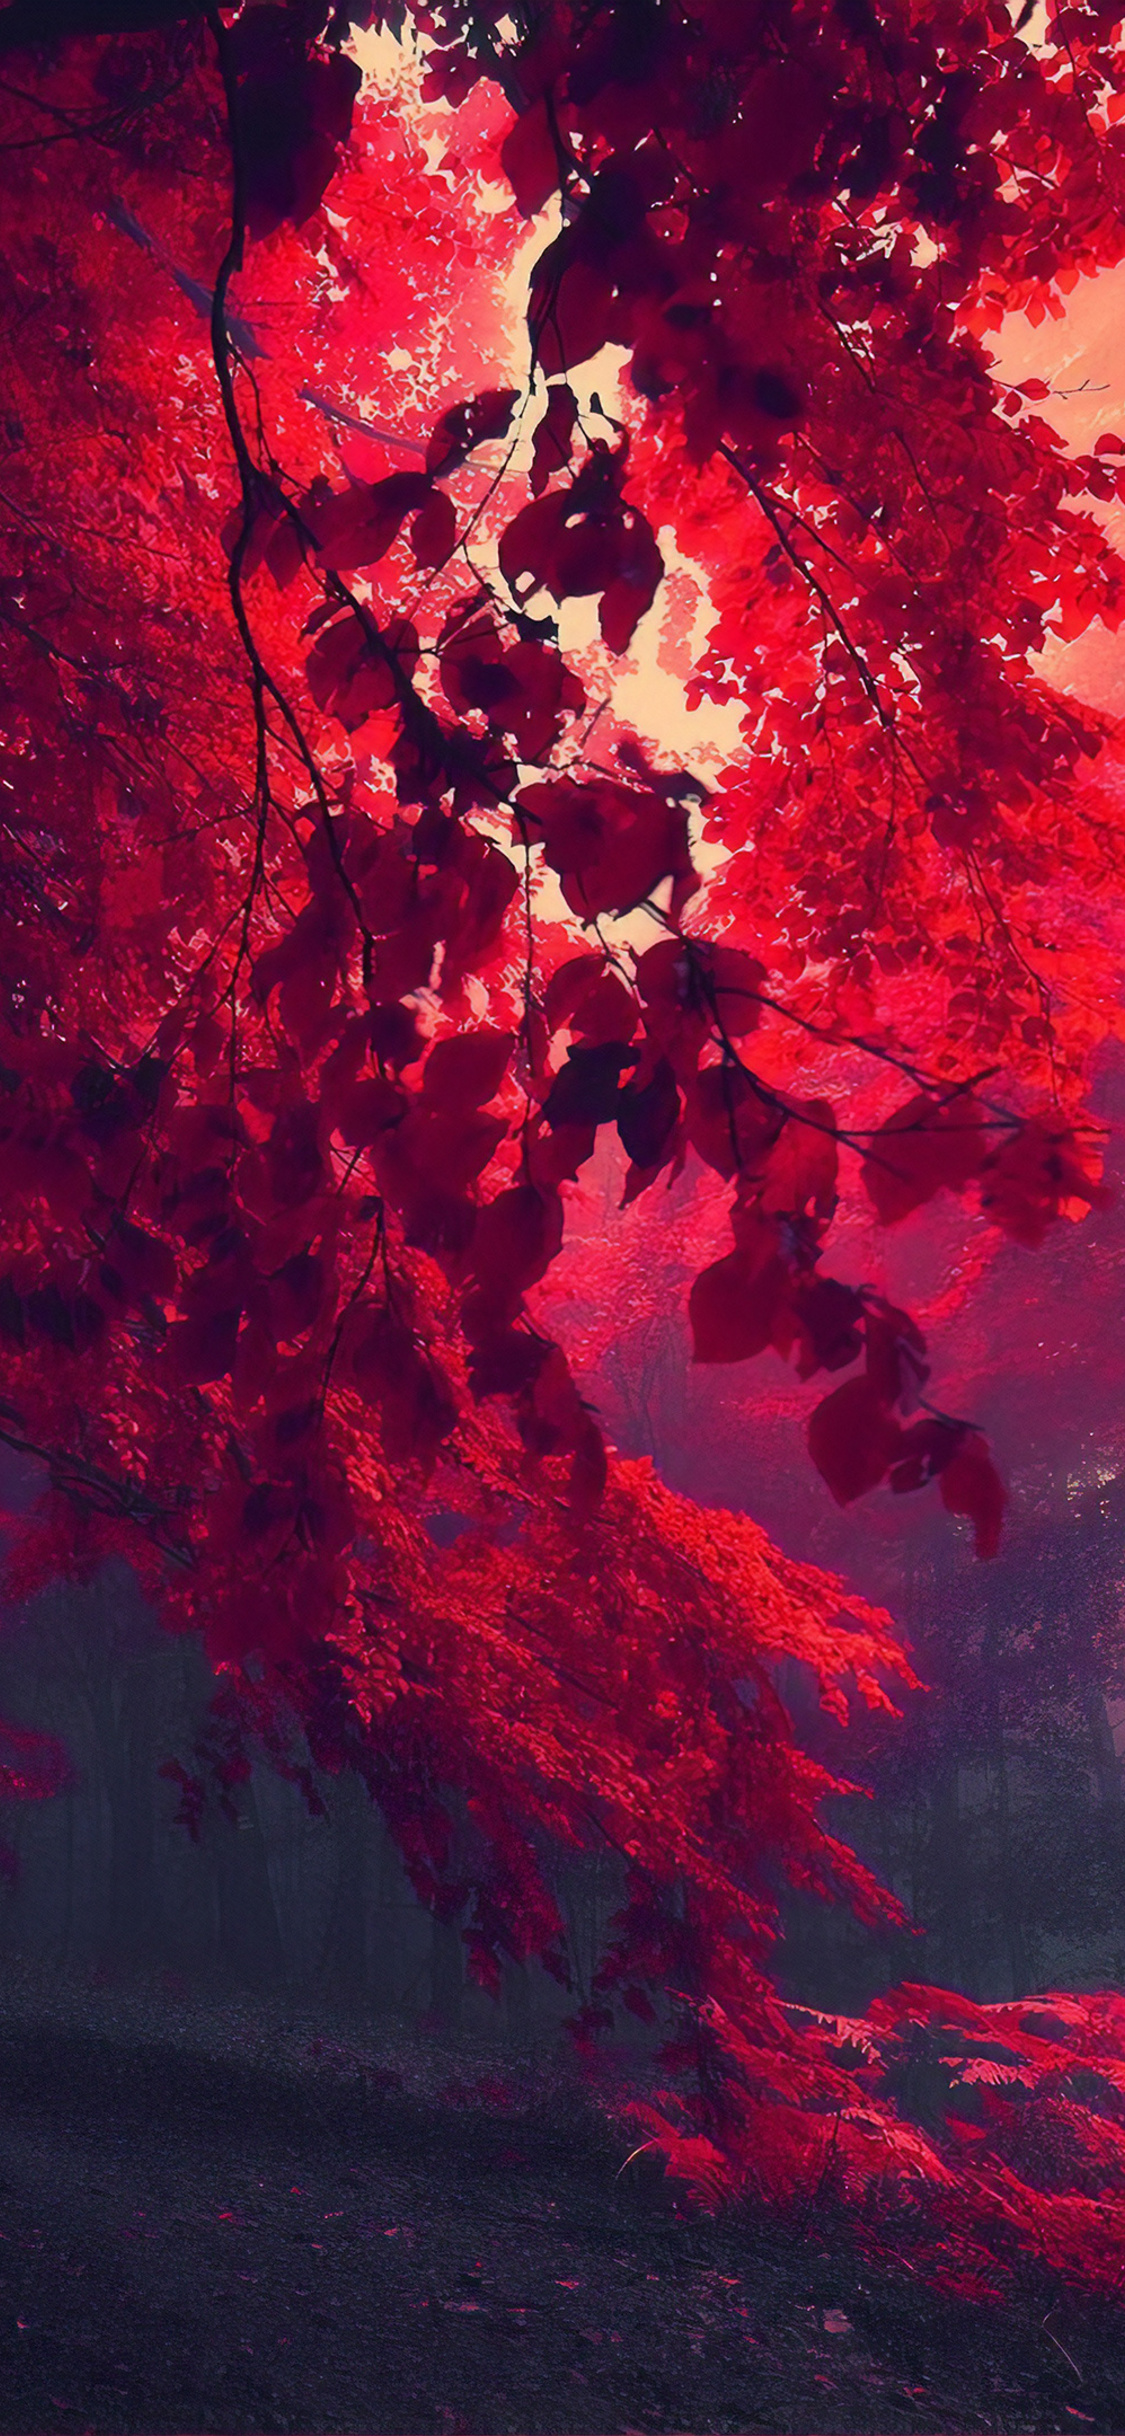 1125x2436 Dark Red Autumn Forest Iphone Xs Iphone 10 Iphone X Hd 4k Wallpapers Images Backgrounds Photos And Pictures